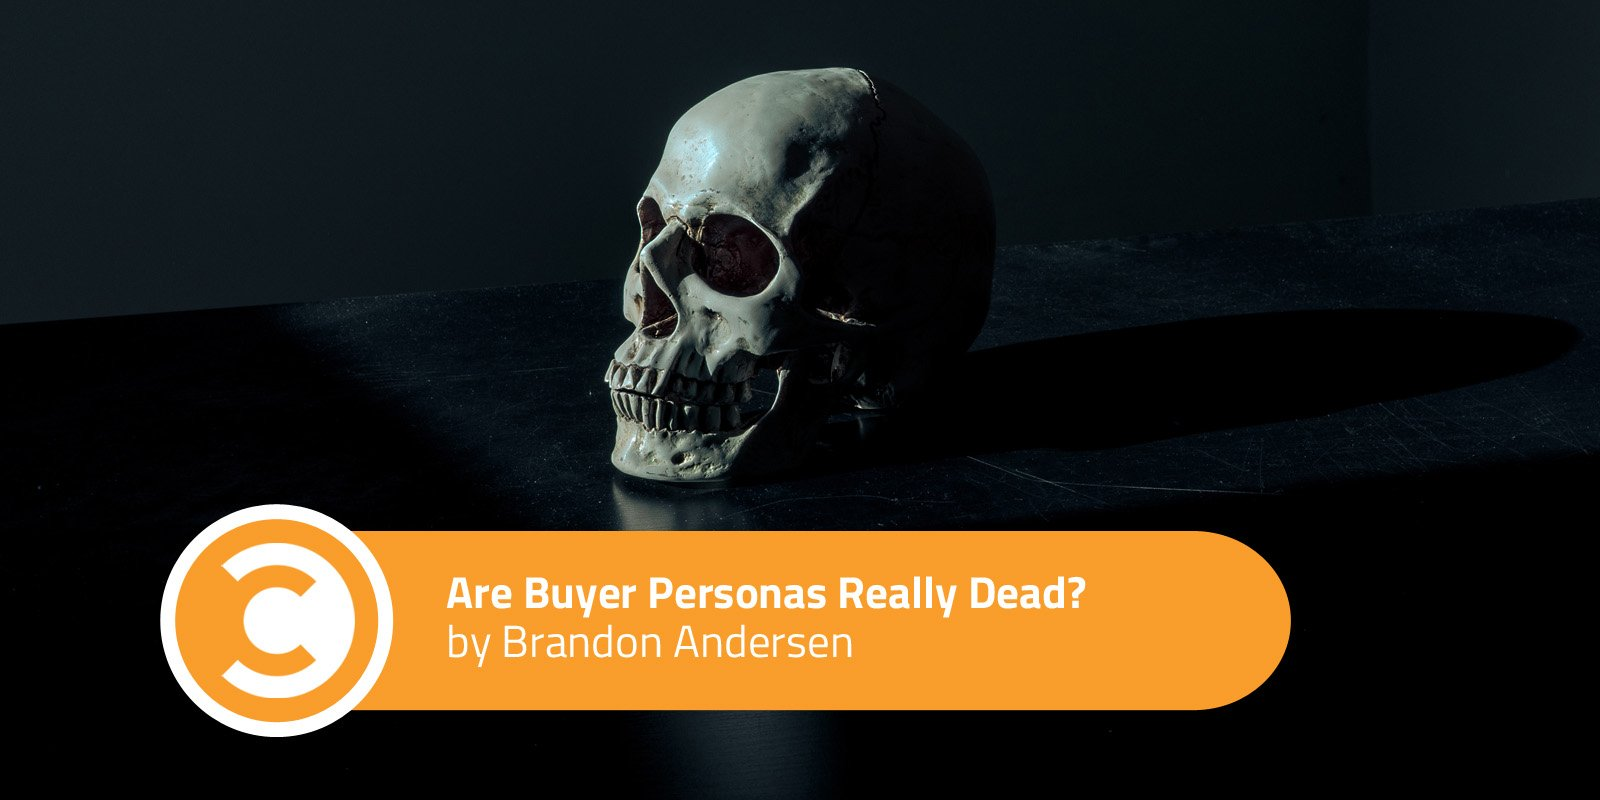 Are Buyer Personas Really Dead